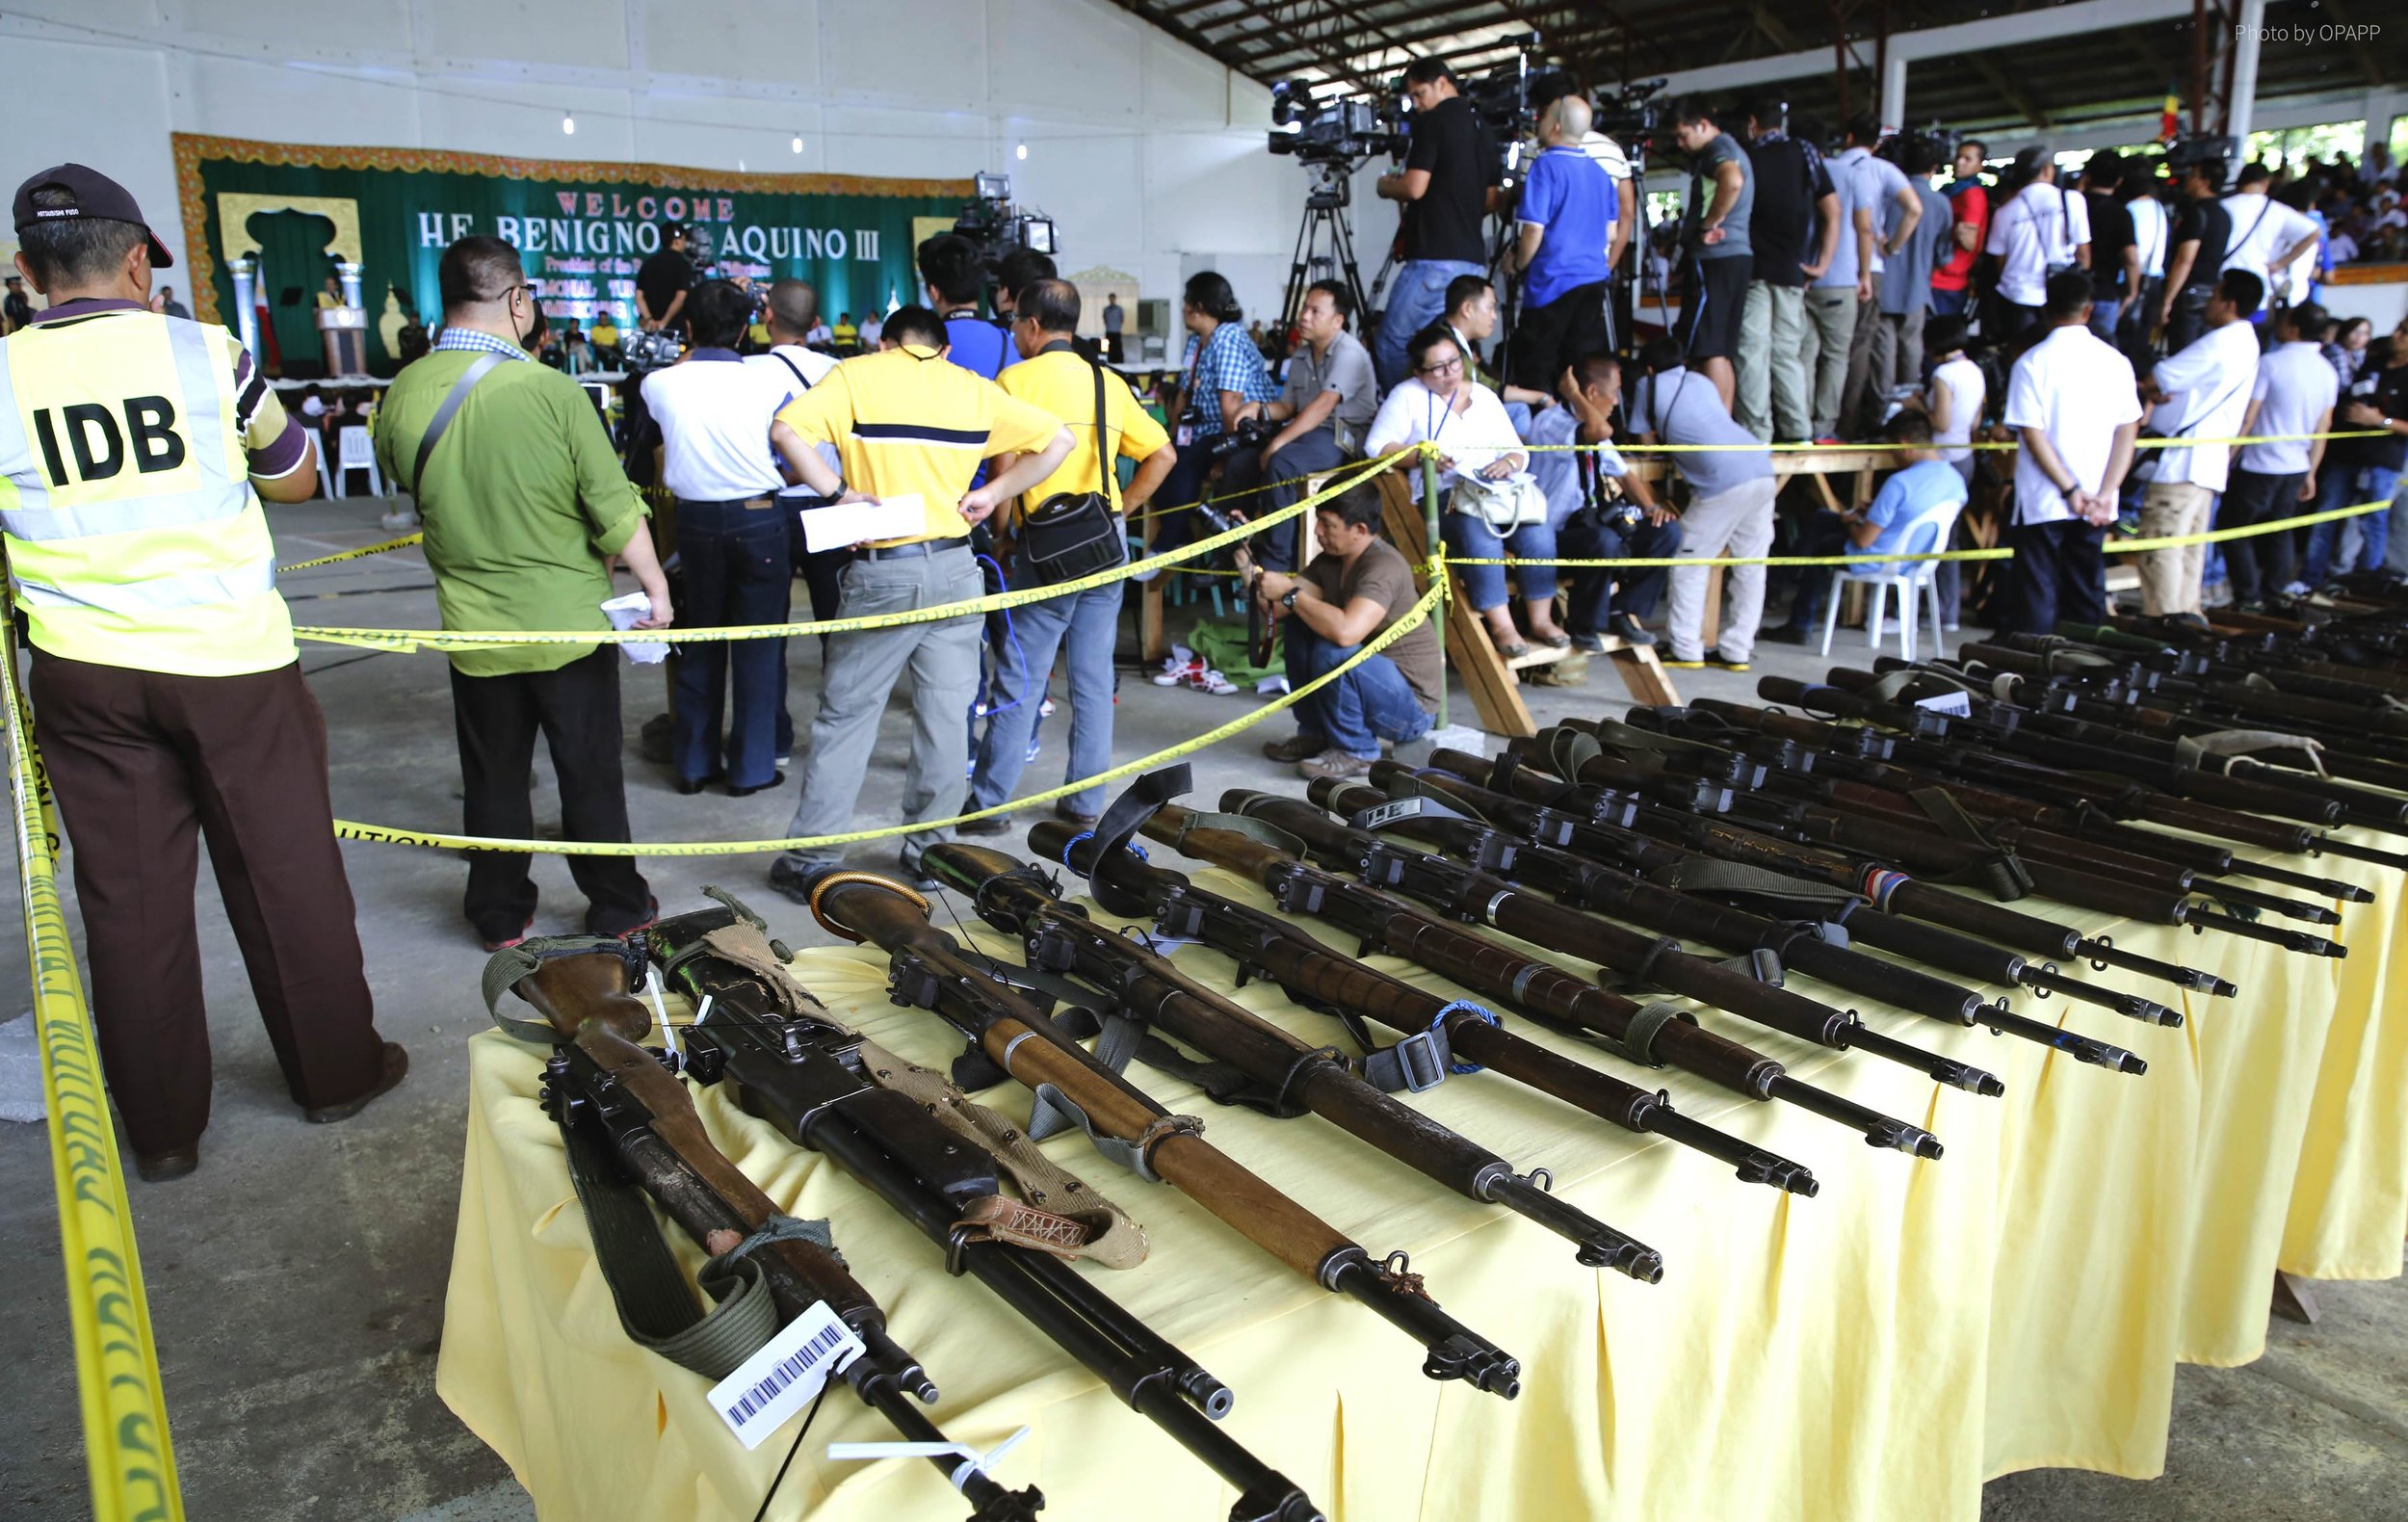 MILF-weapons-decommissioning-june-2015.jpg